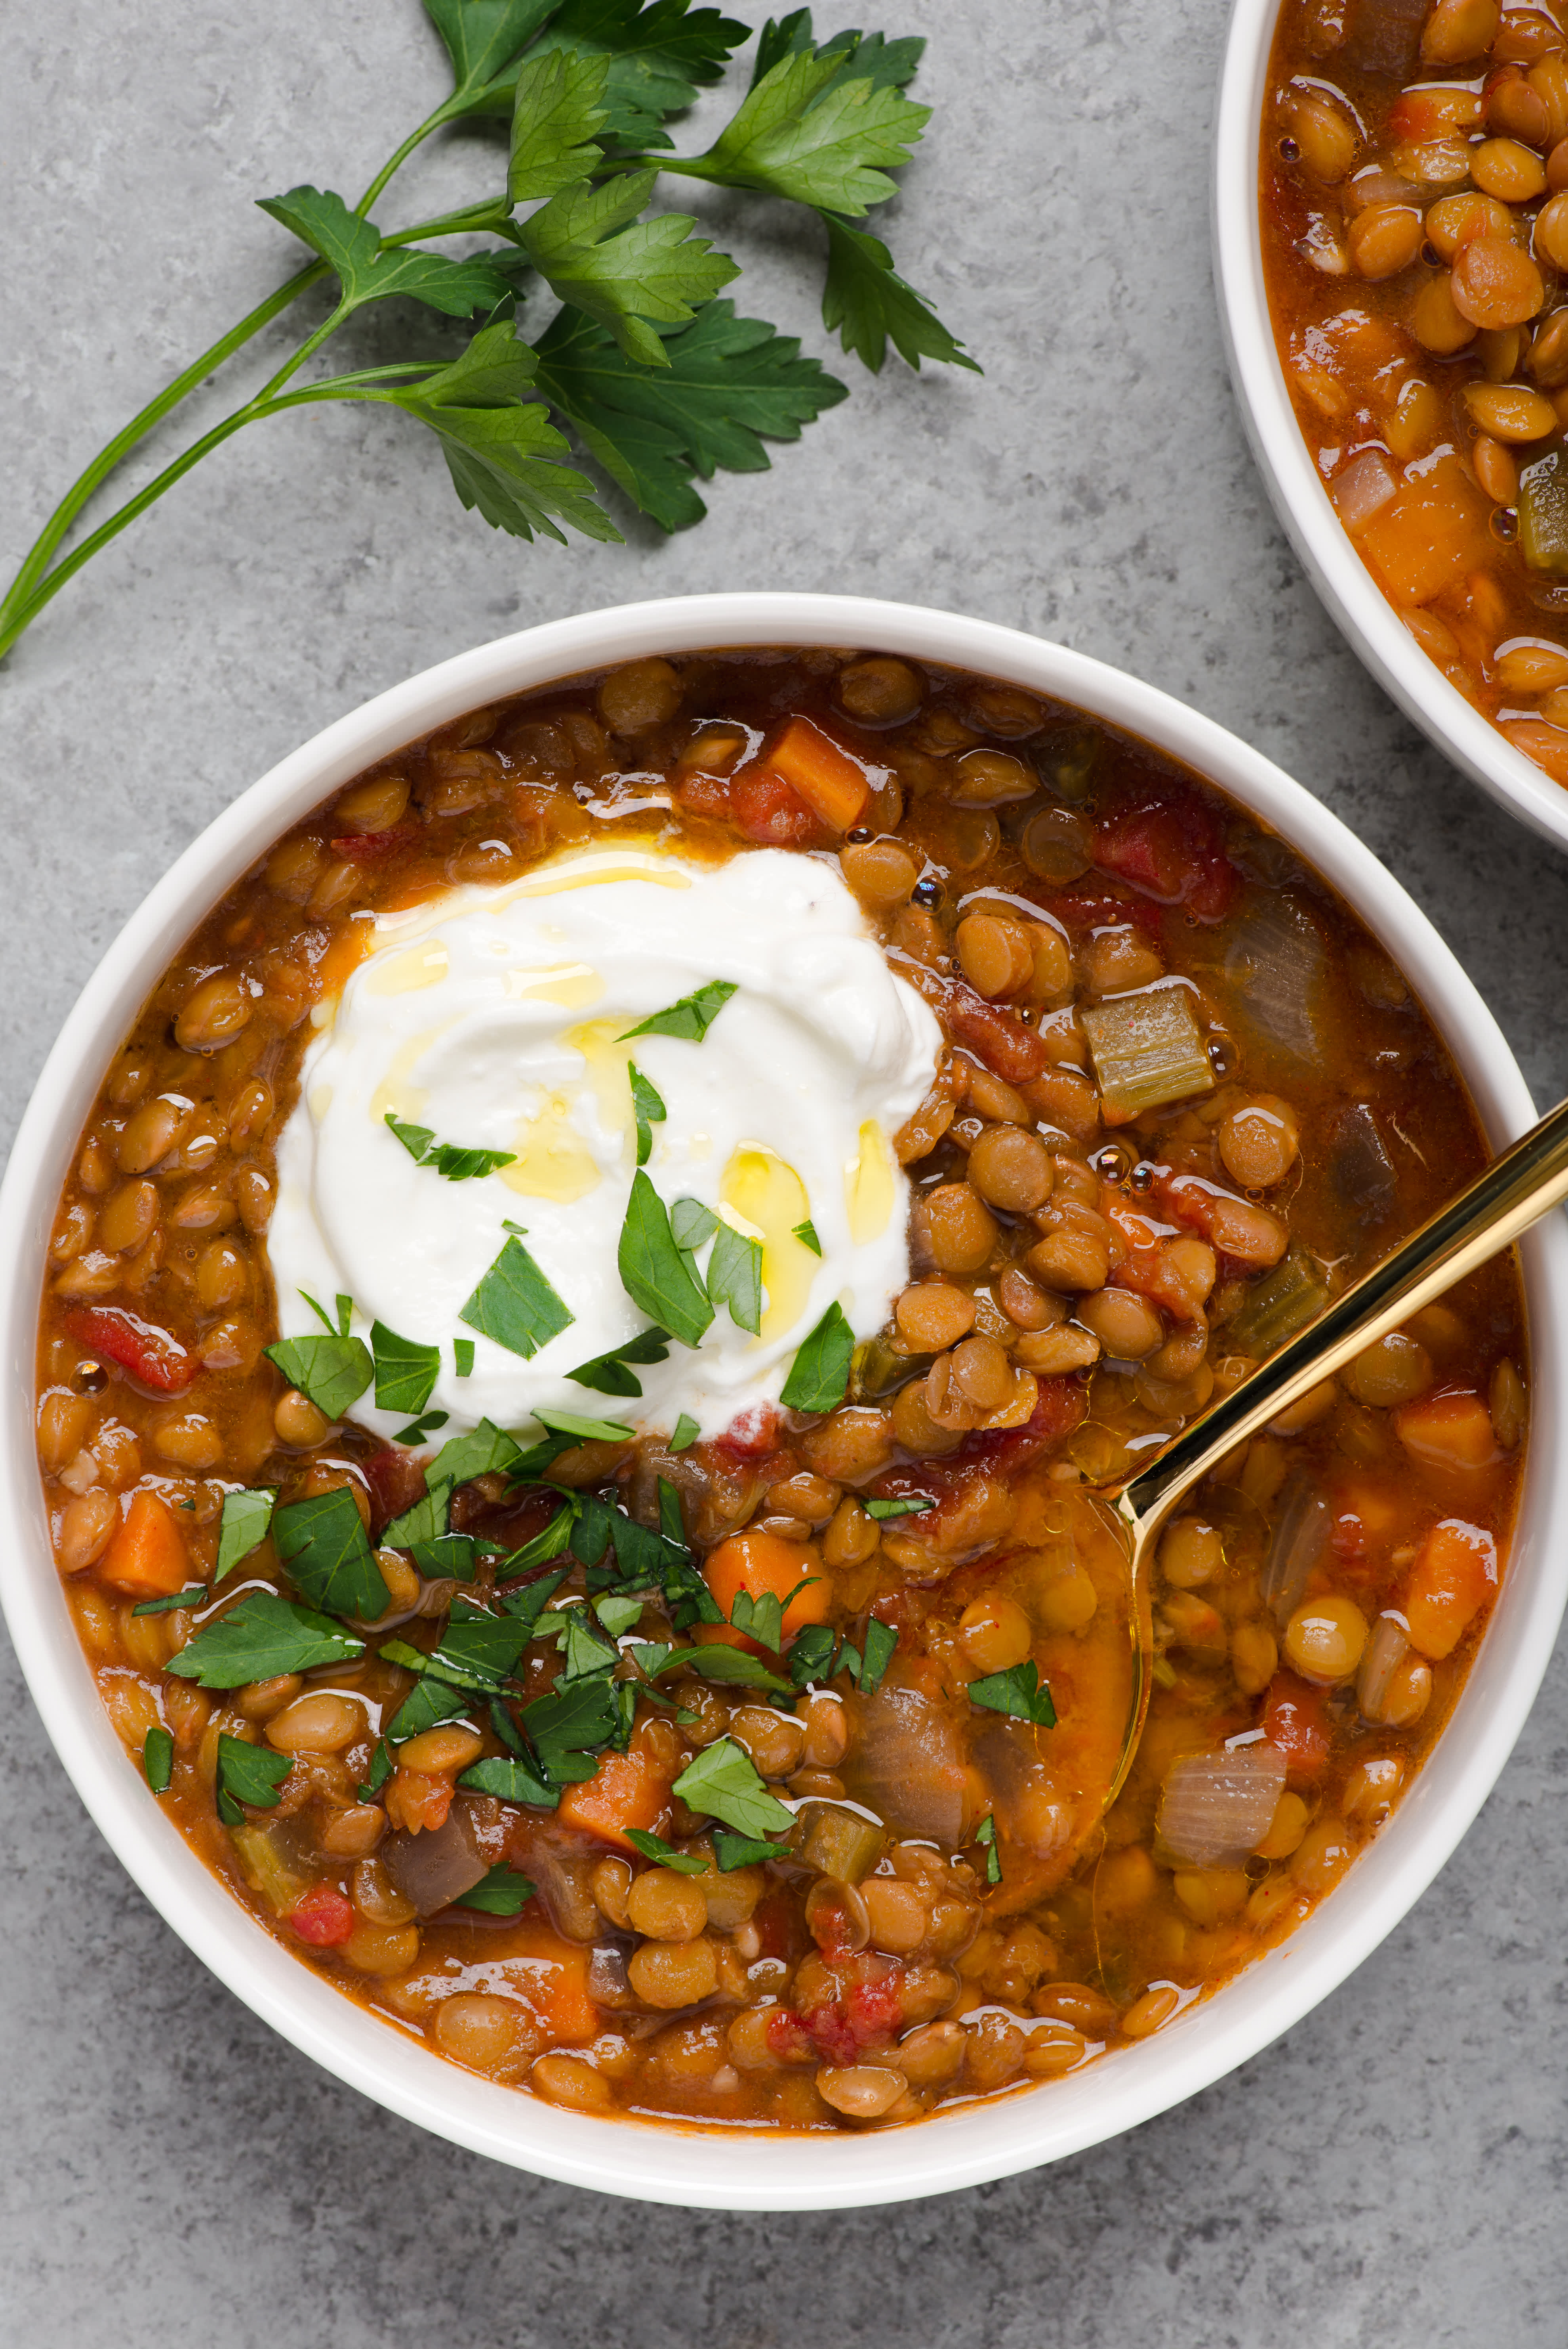 10 Slow Cooker Recipes That Work for Two People (Who Like Leftovers)